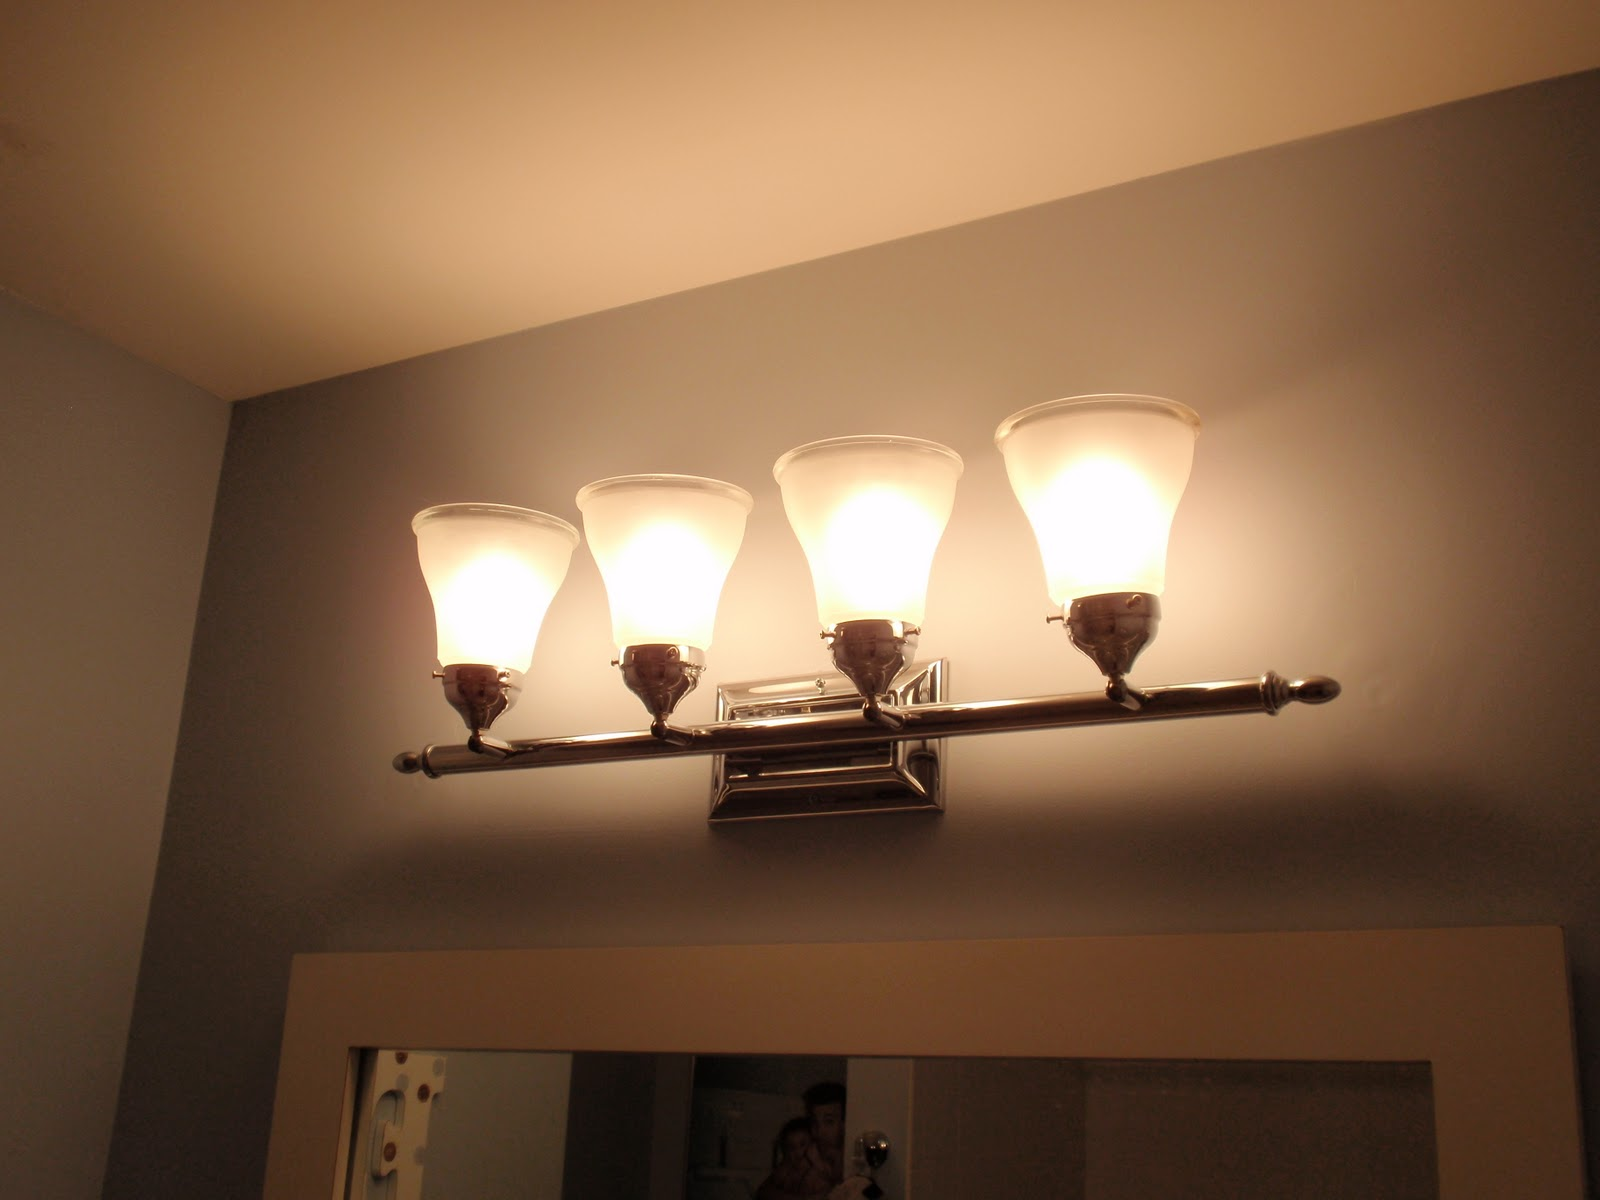 Bathroom Enchanting Light Fixtures Lowes Lighting Over: DIY By Design: Bathrooms